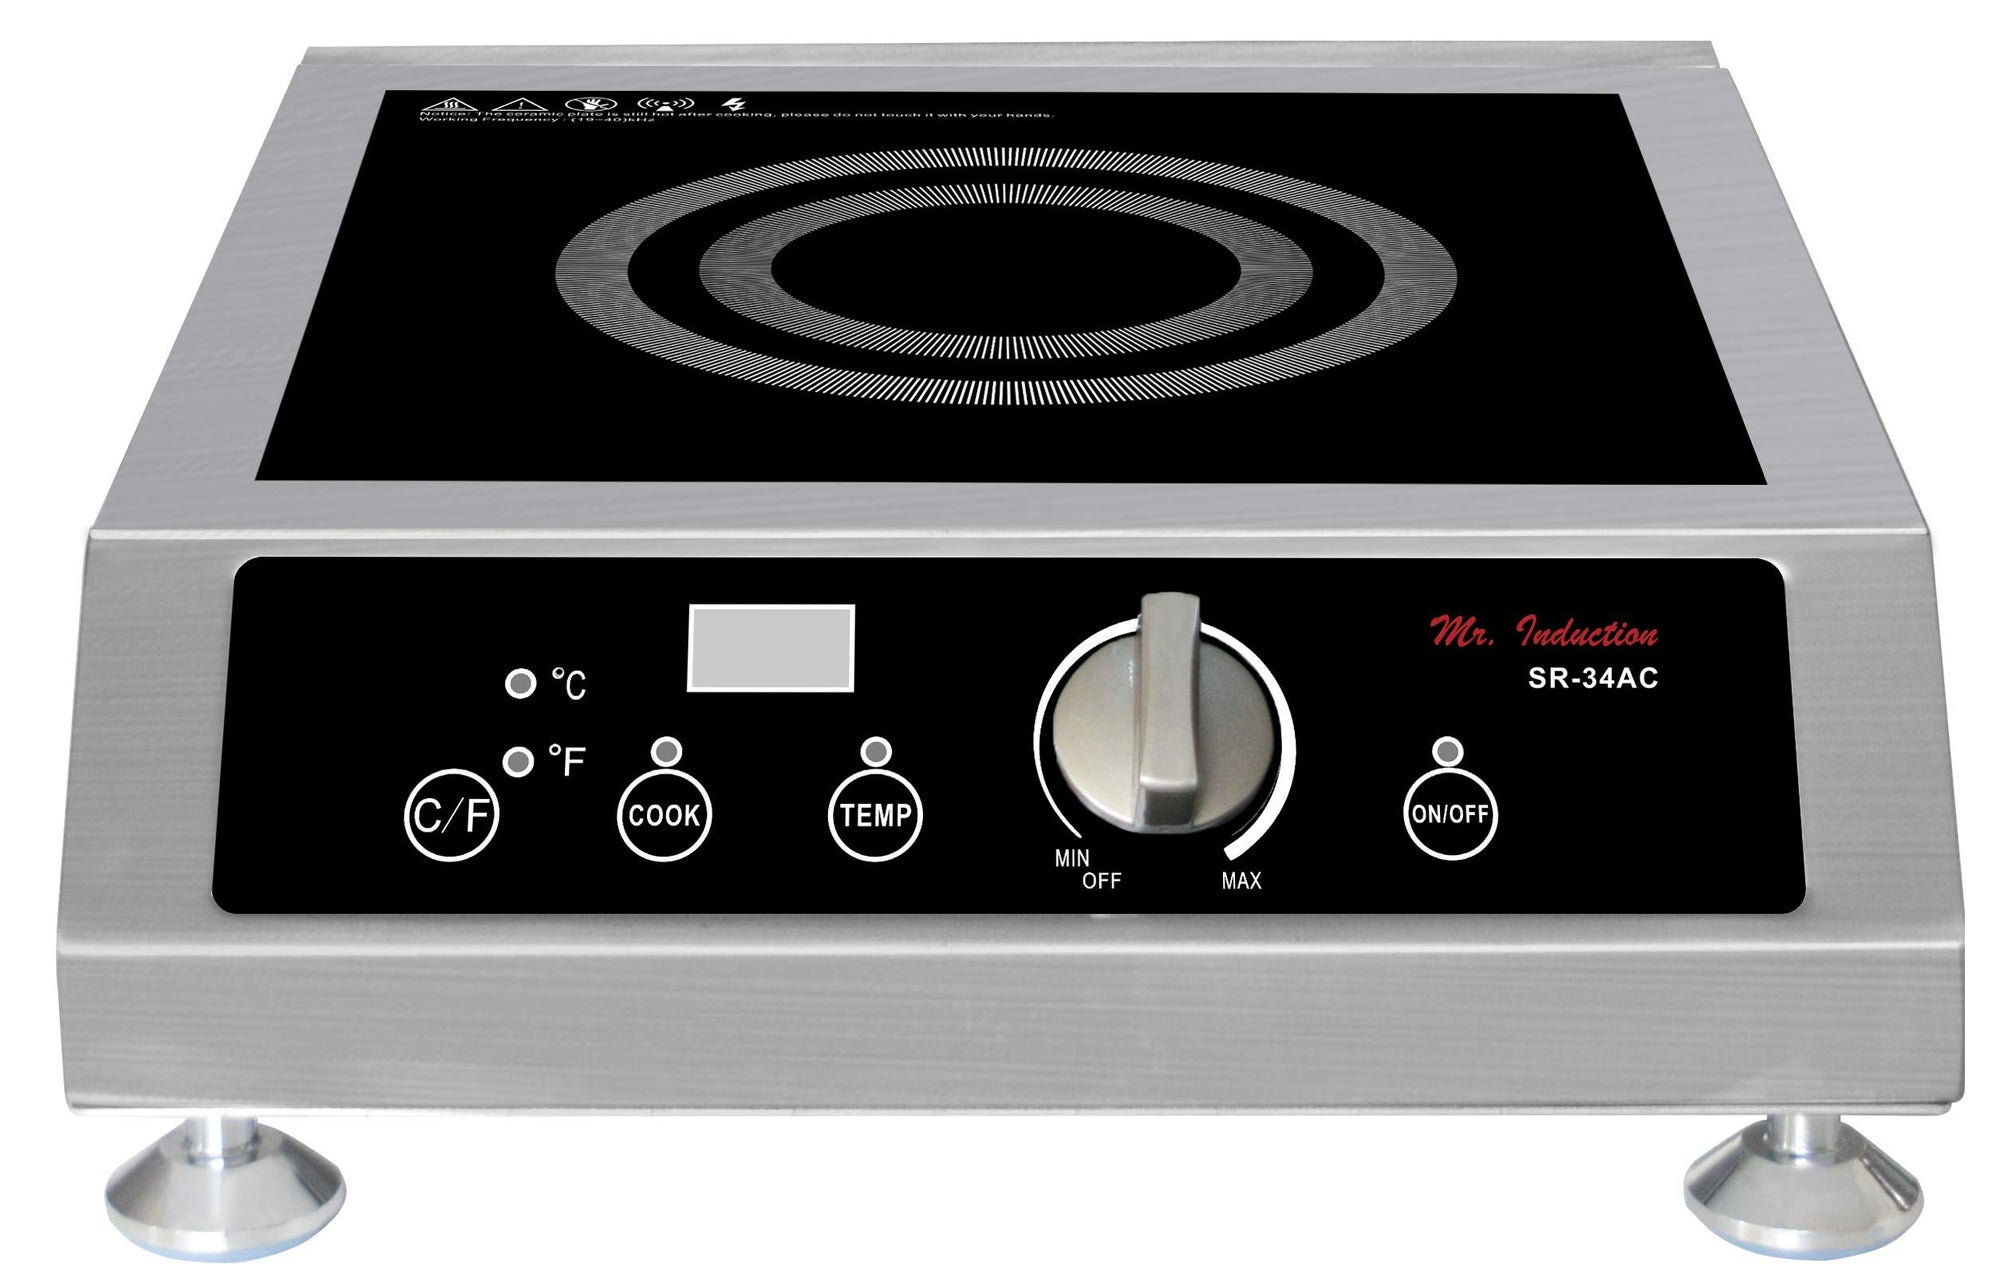 Mr. Induction SPT SR-34AC 3400W Commercial Countertop Range Induction Cooktop, Gray